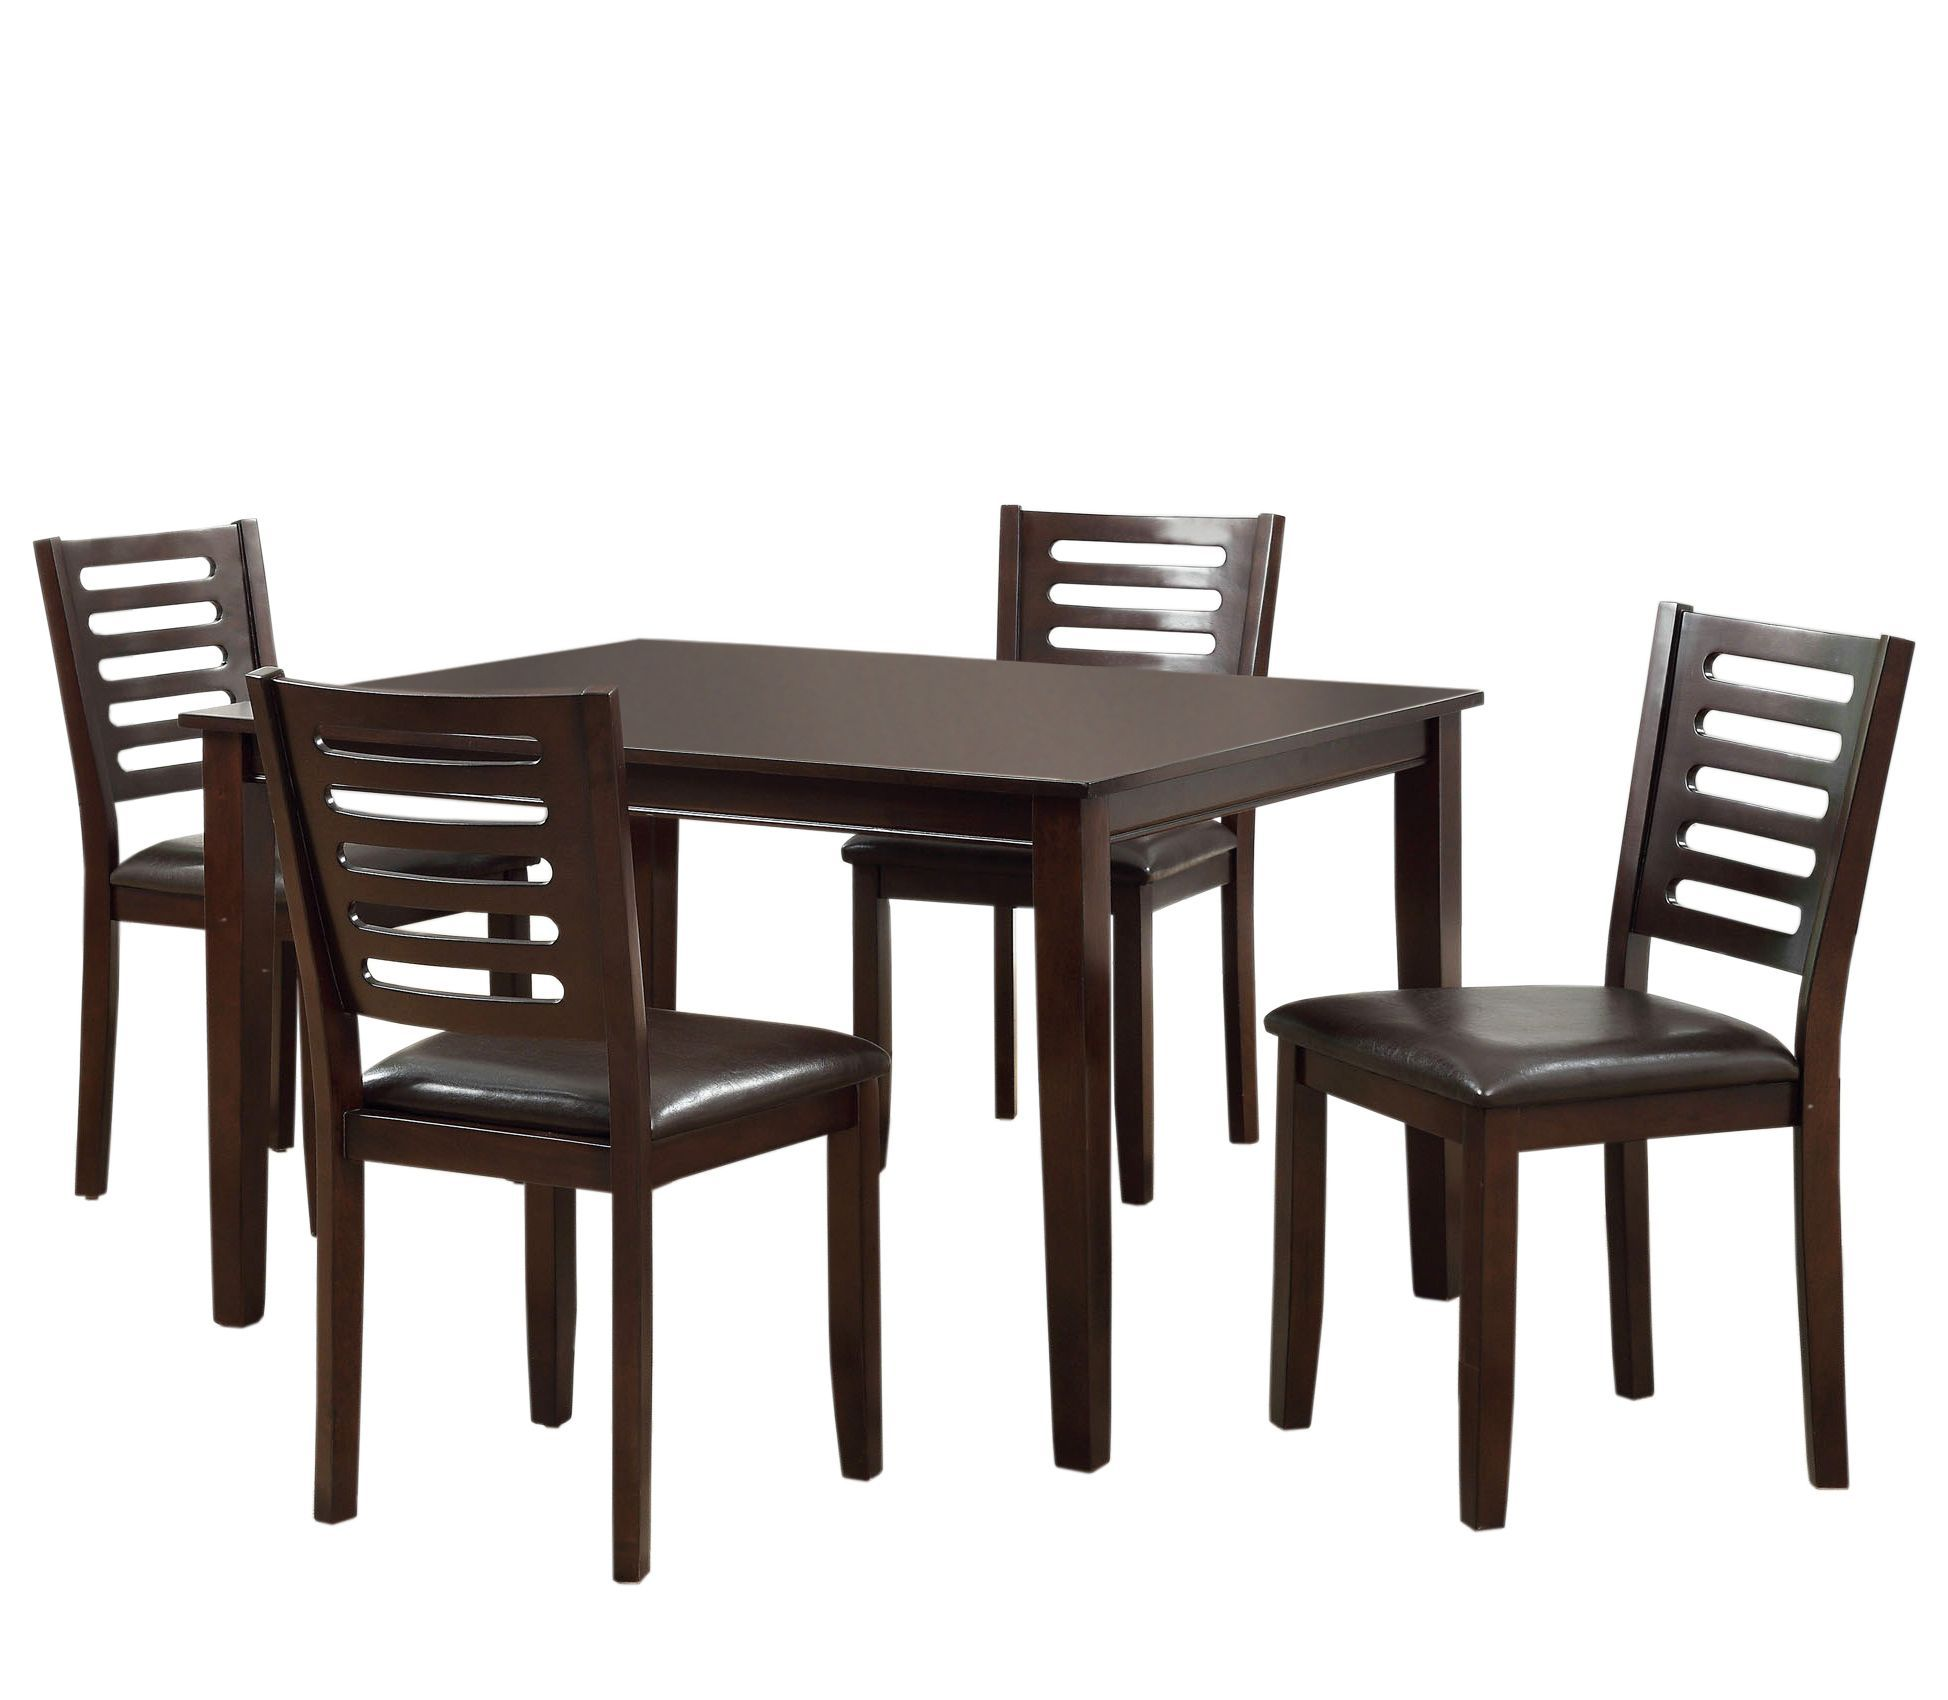 Furniture Of America Pentars Espresso 5 Piece Dining Table Set